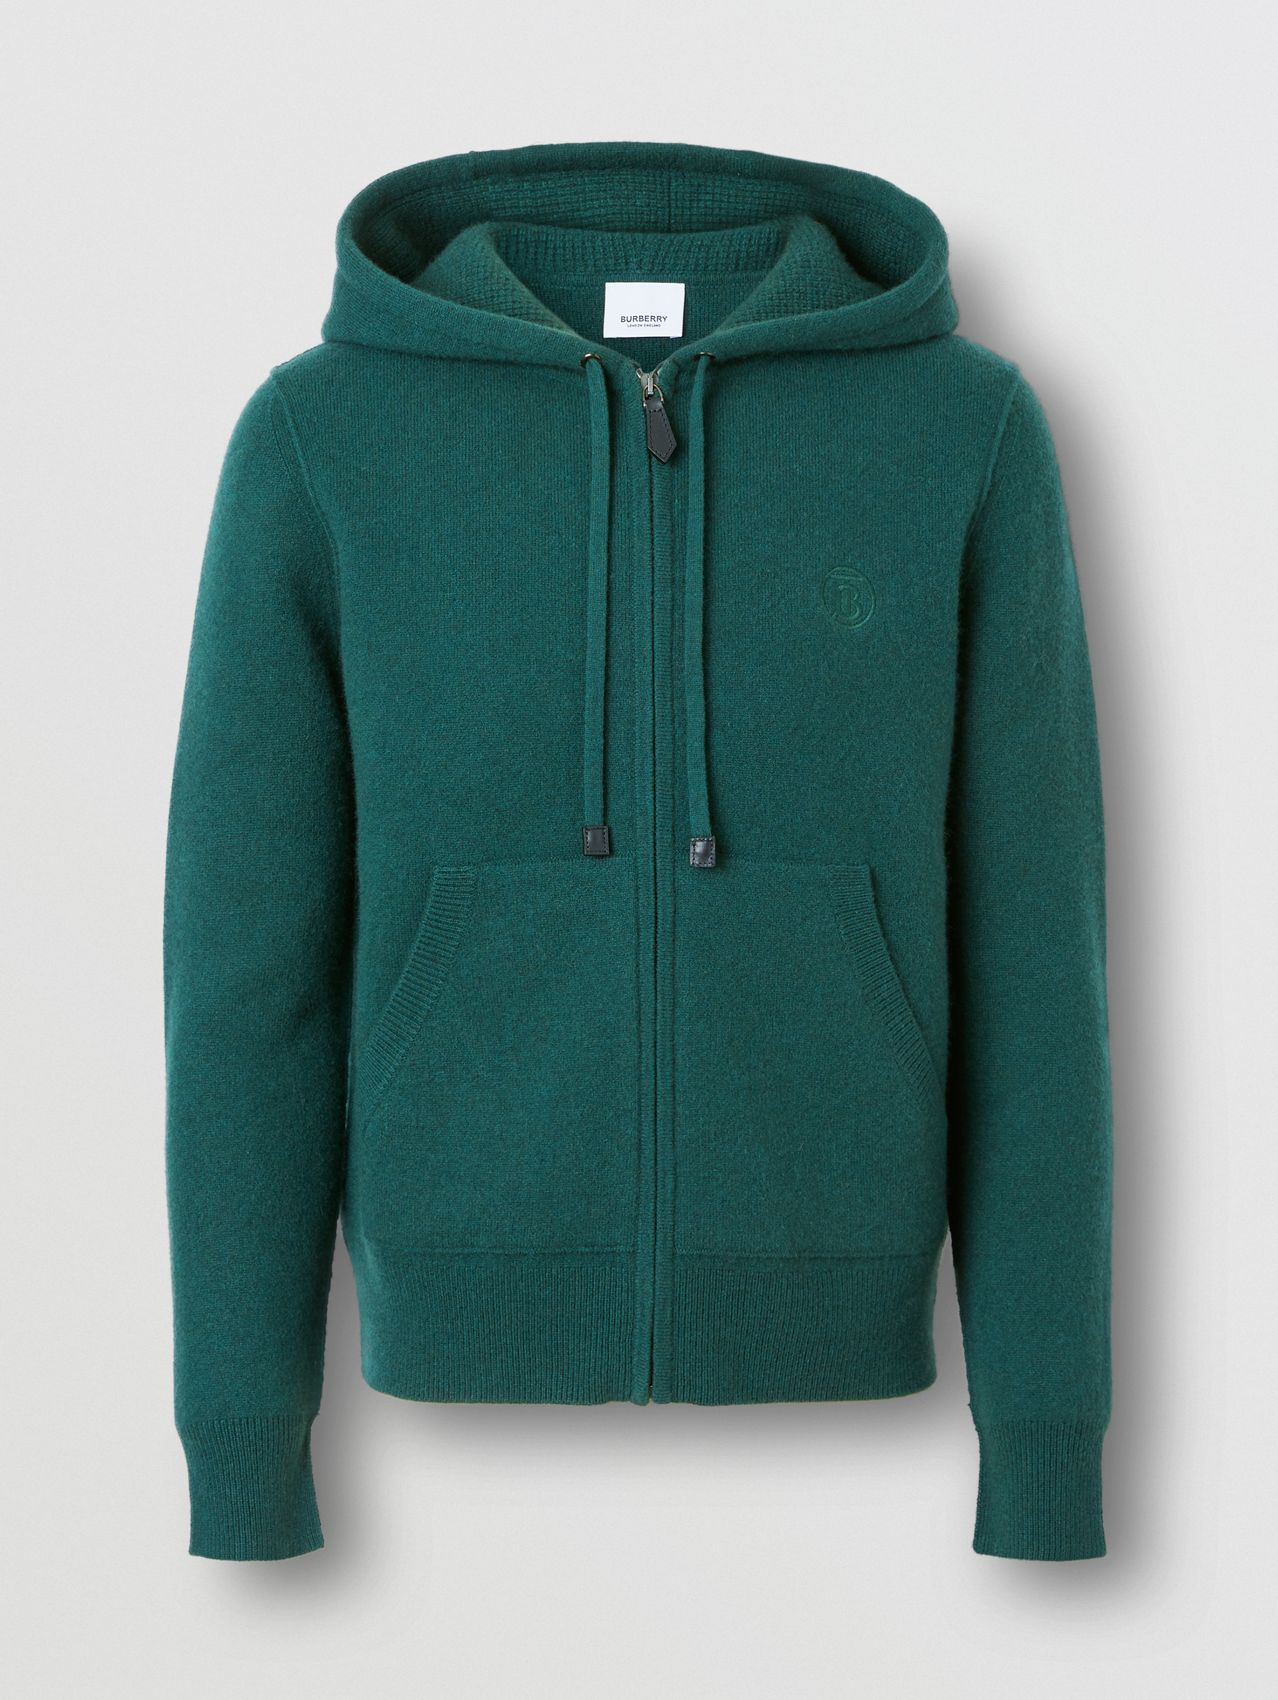 Monogram Motif Cashmere Blend Hooded Top in Bottle Green